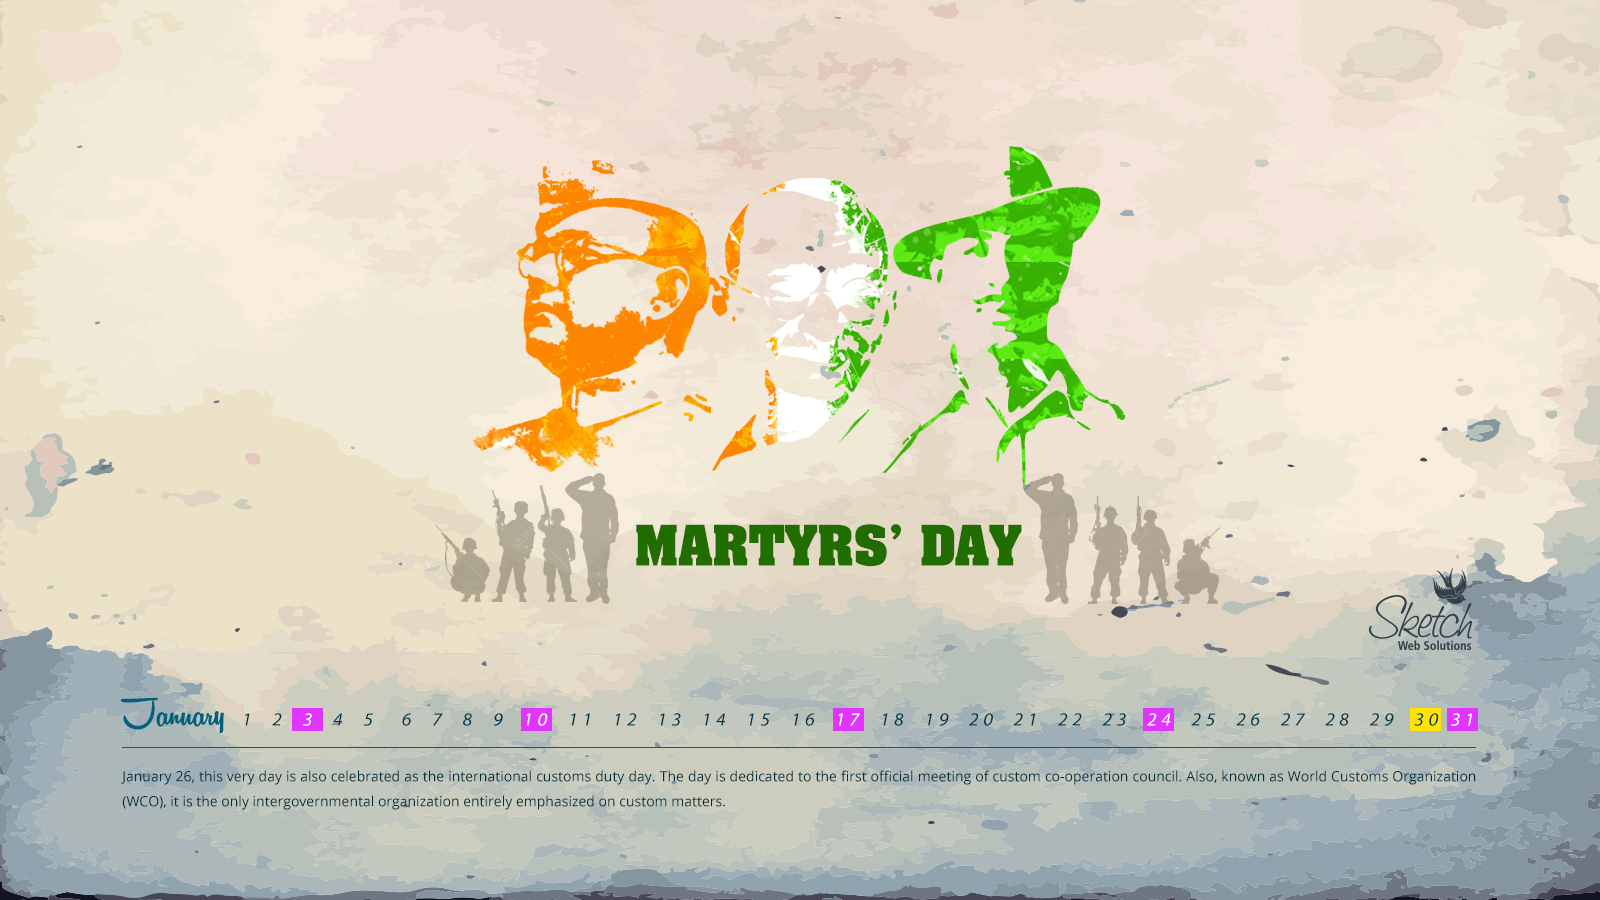 Martyrs' day 16